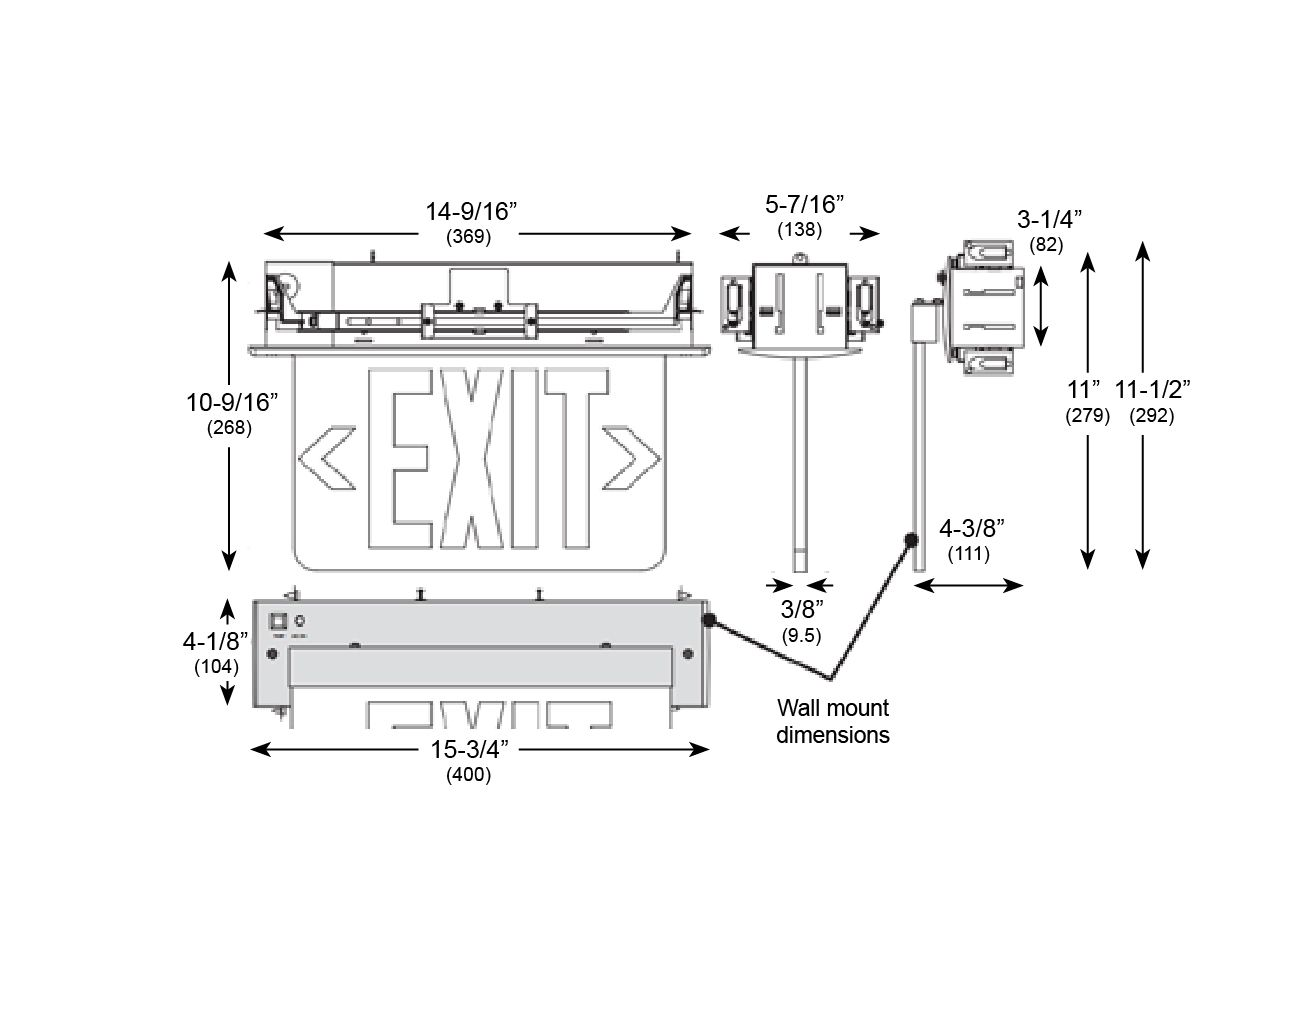 Alcon Lighting Edge Lit 901 Recessed Led Exit Signs Sign Wiring Diagram 120v 277v